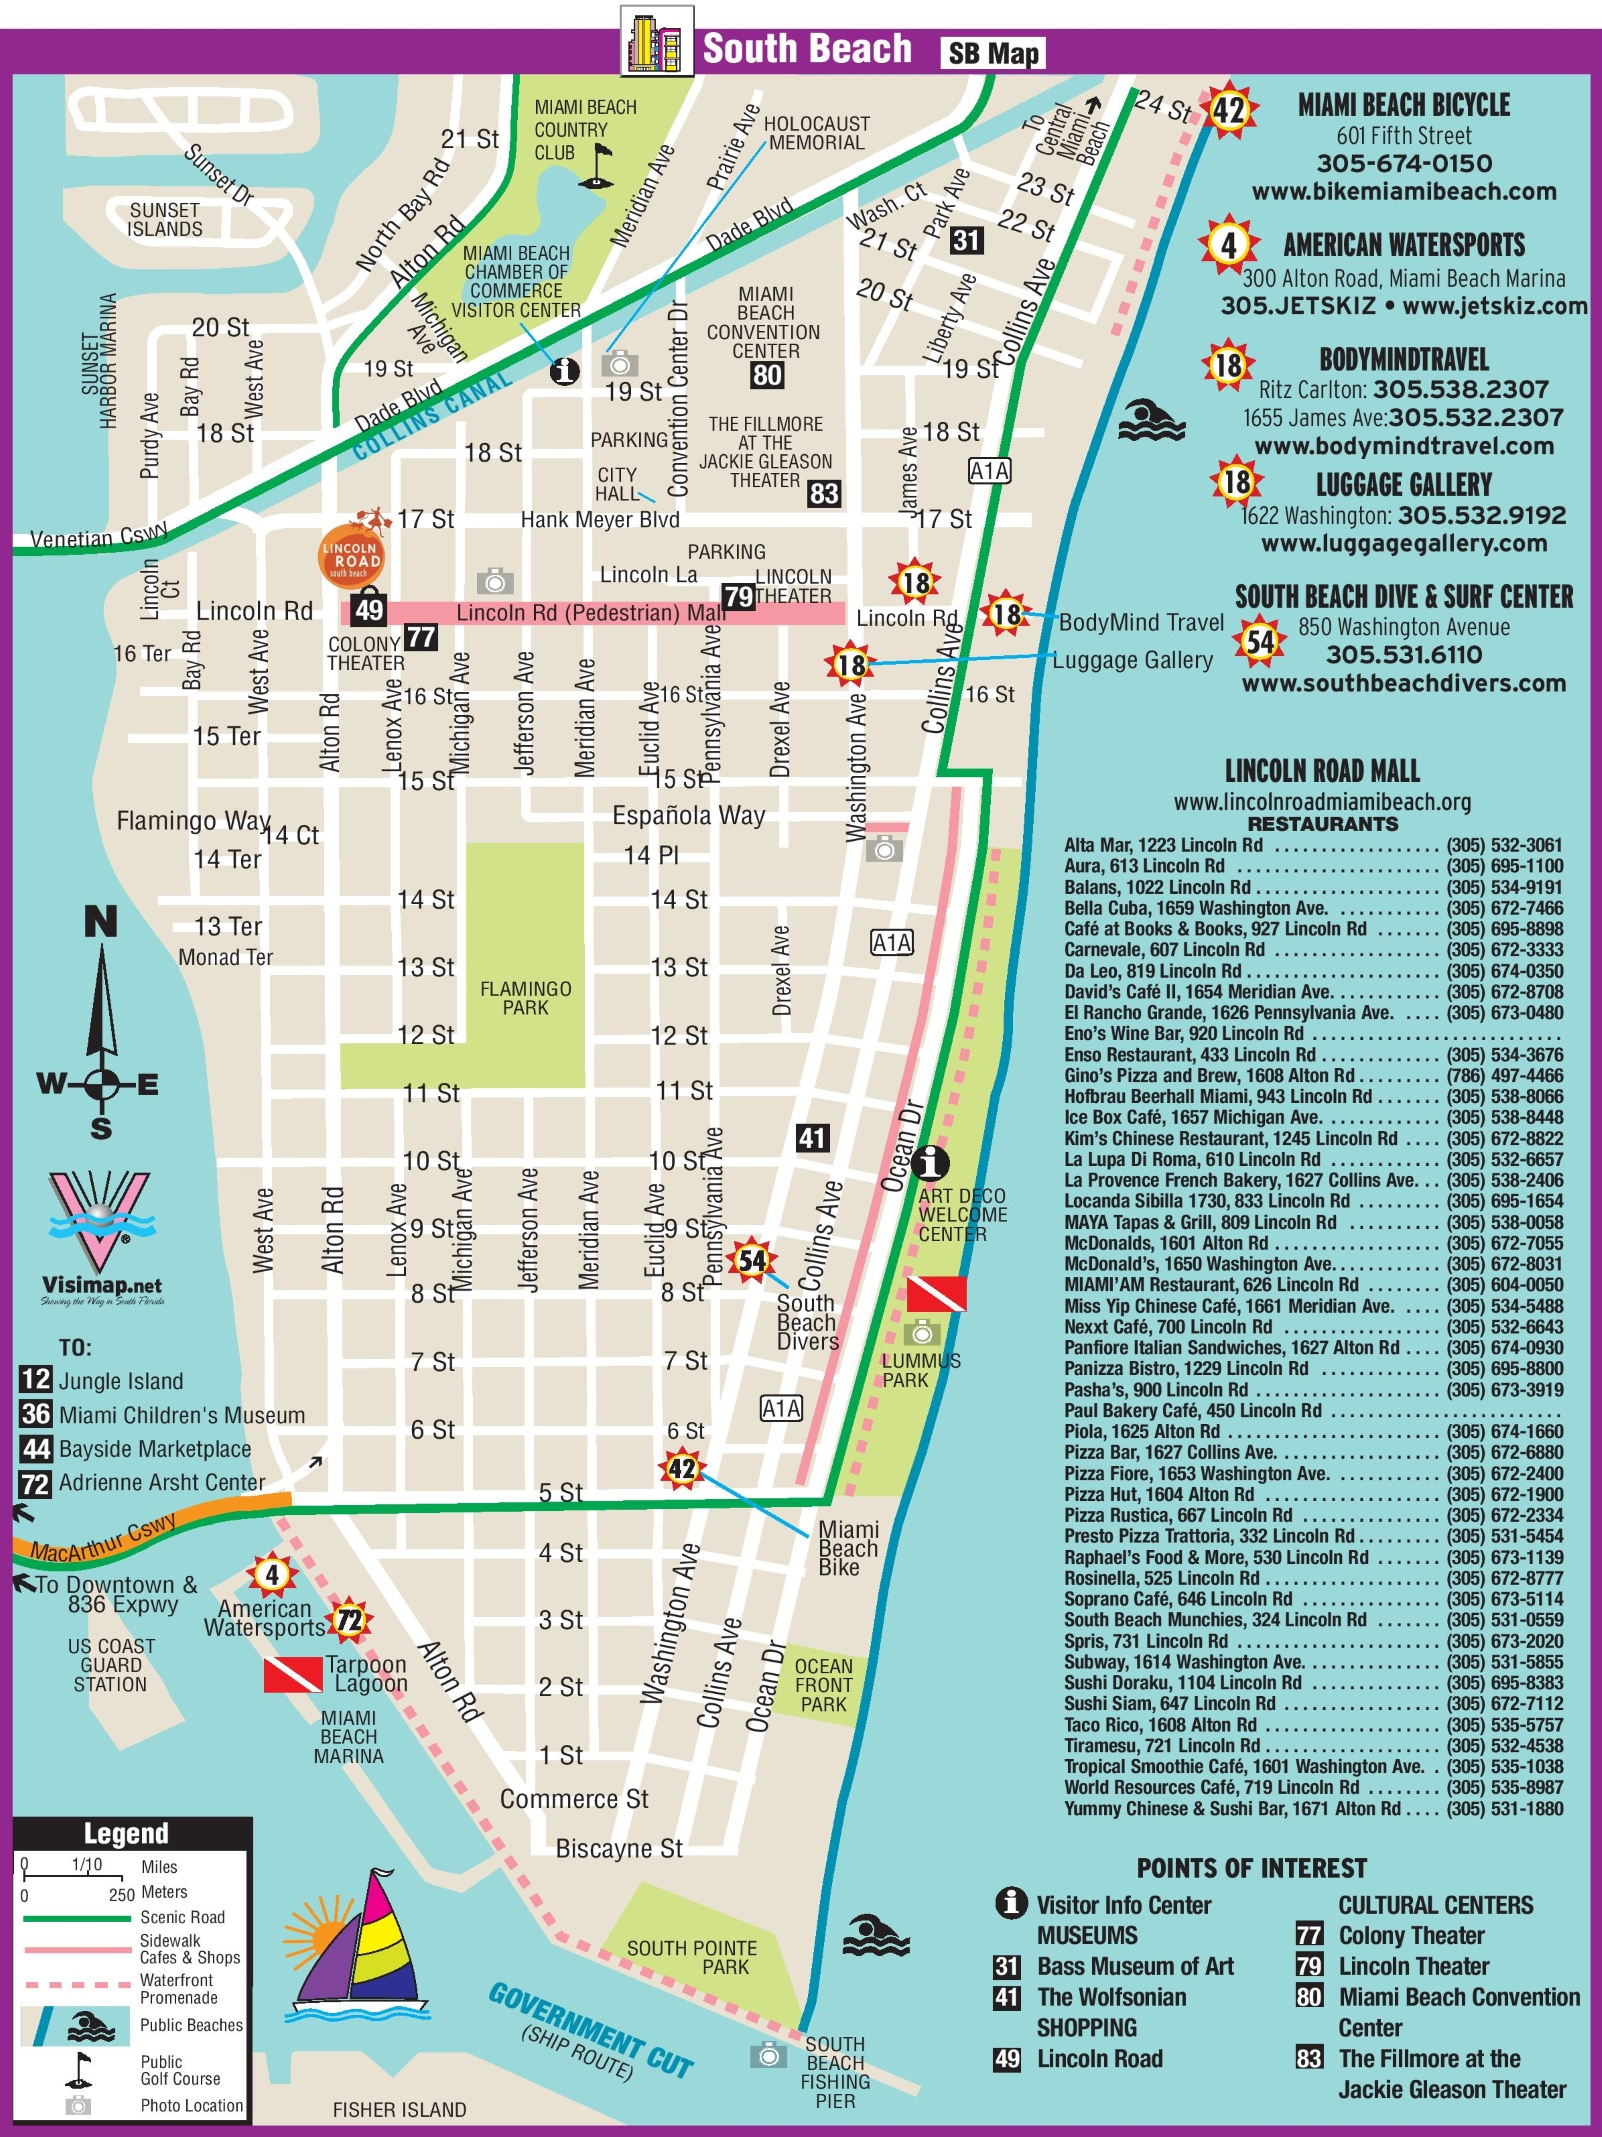 South Beach Restaurant And Sightseeing Map - Map Of South Beach Miami Florida